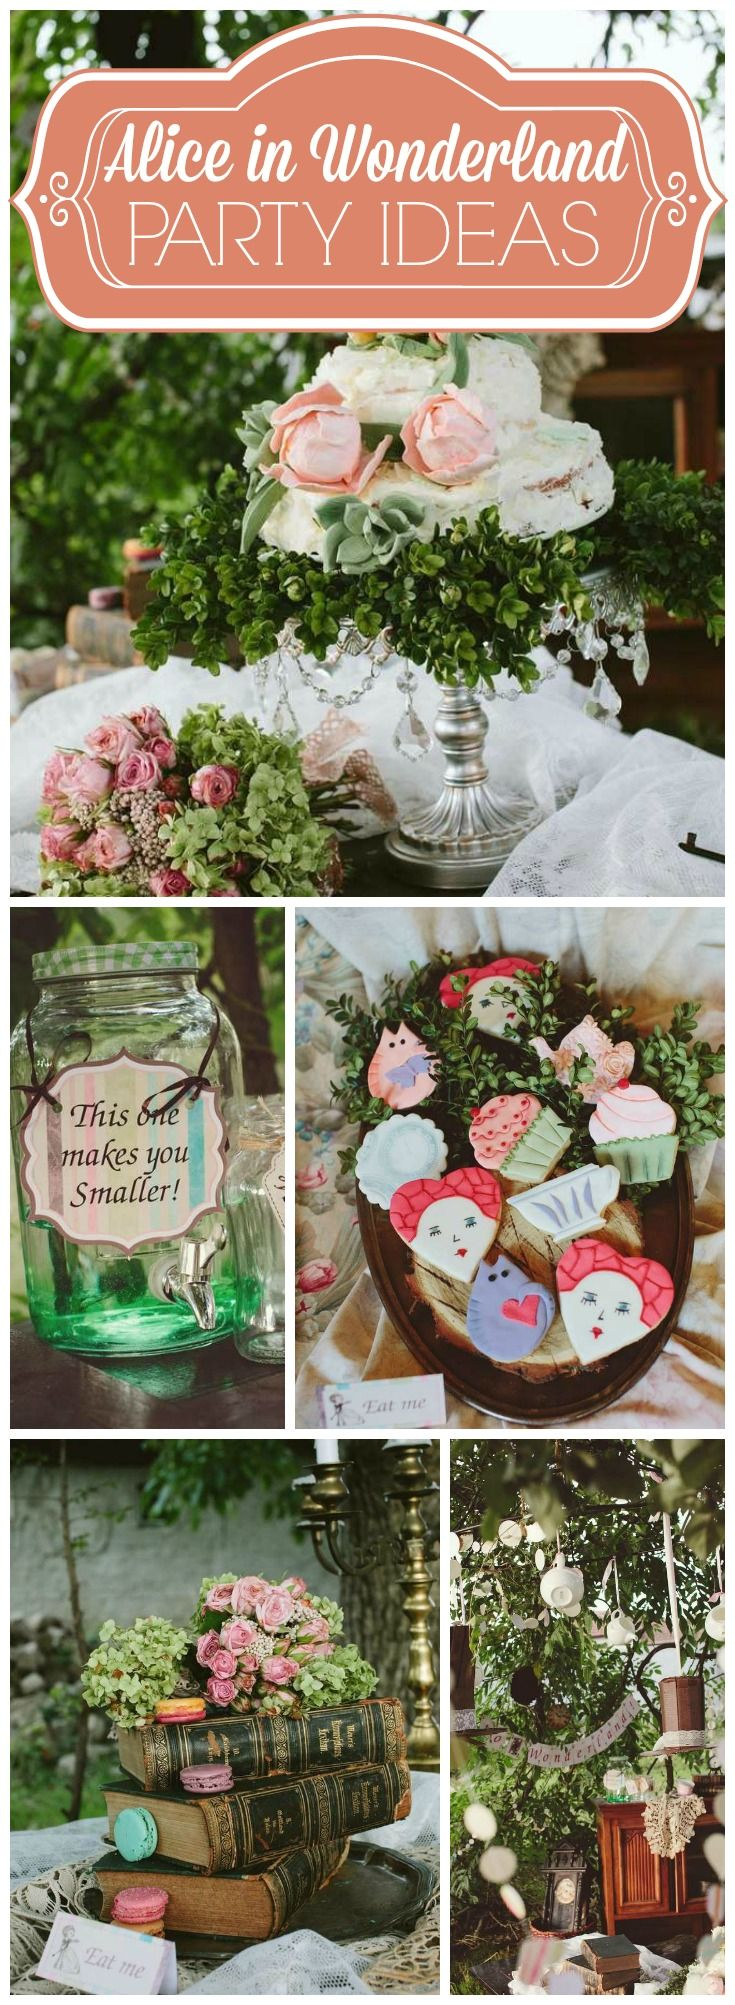 What a magical outdoor Alice in Wonderland party! See more party ideas at CatchMyParty.com!